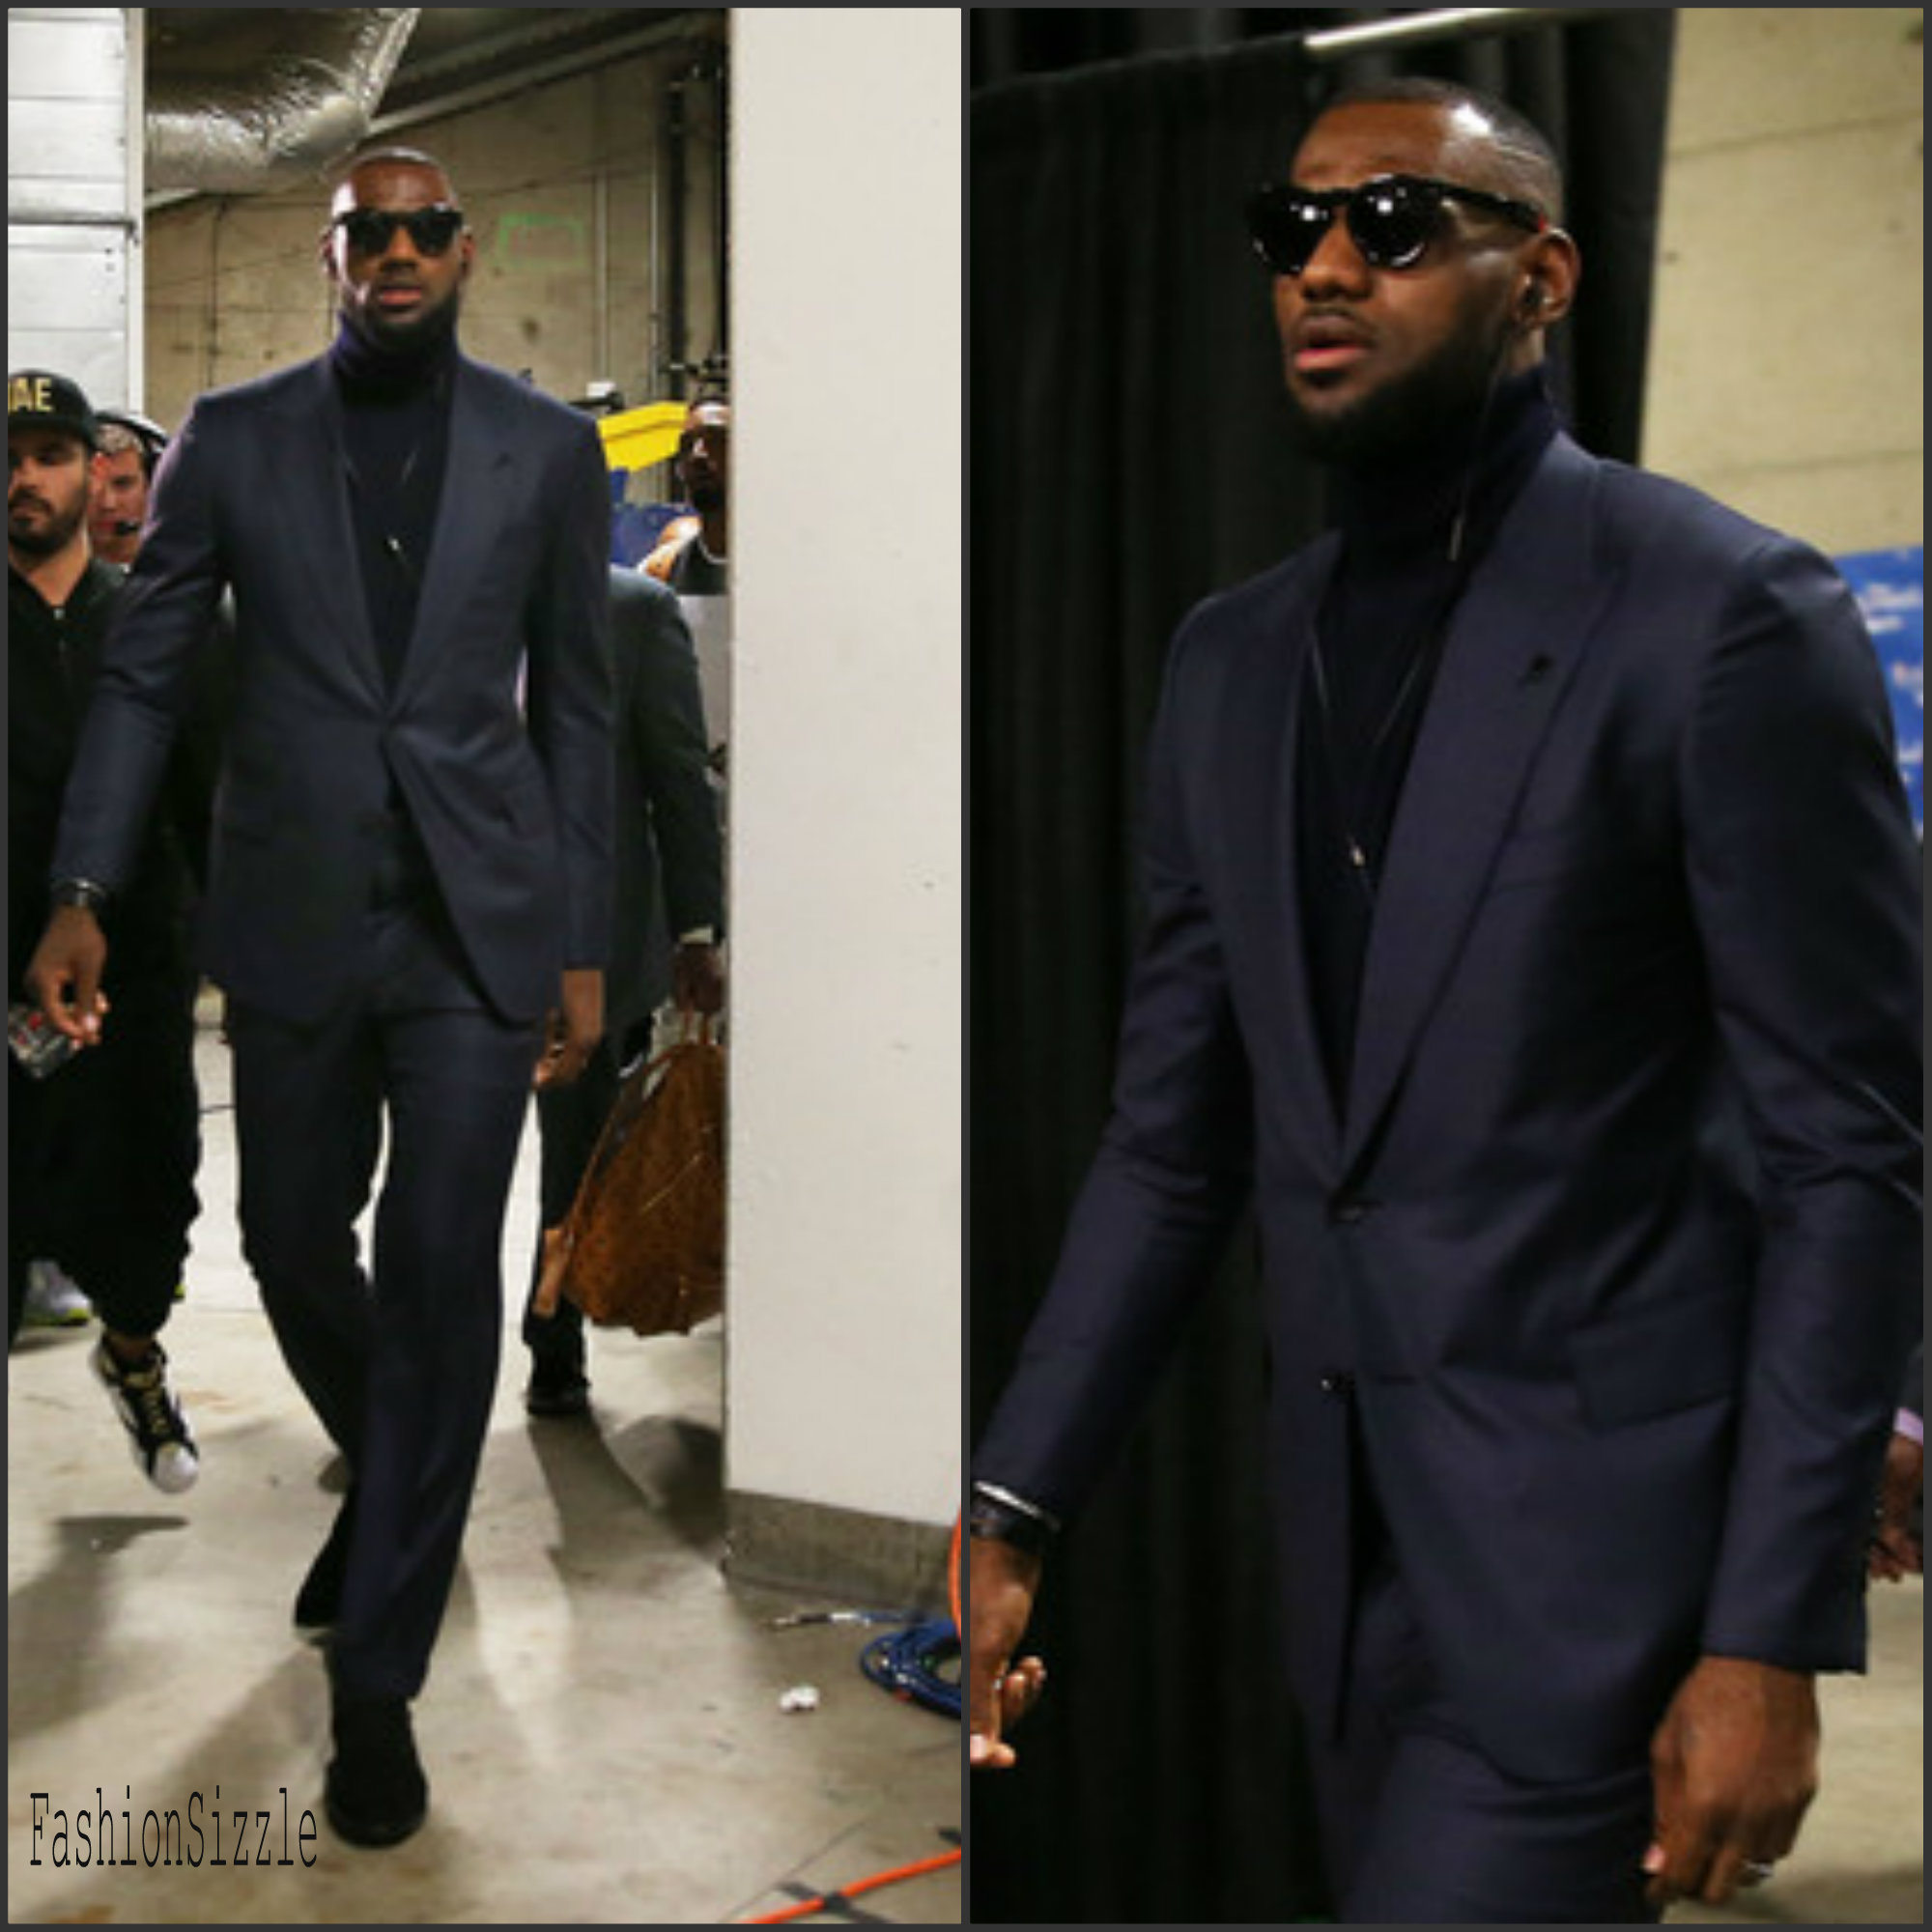 LeBron James Arrives for Game 1 of The NBA Finals in Tom Ford and Ralph Lauren - Fashionsizzle